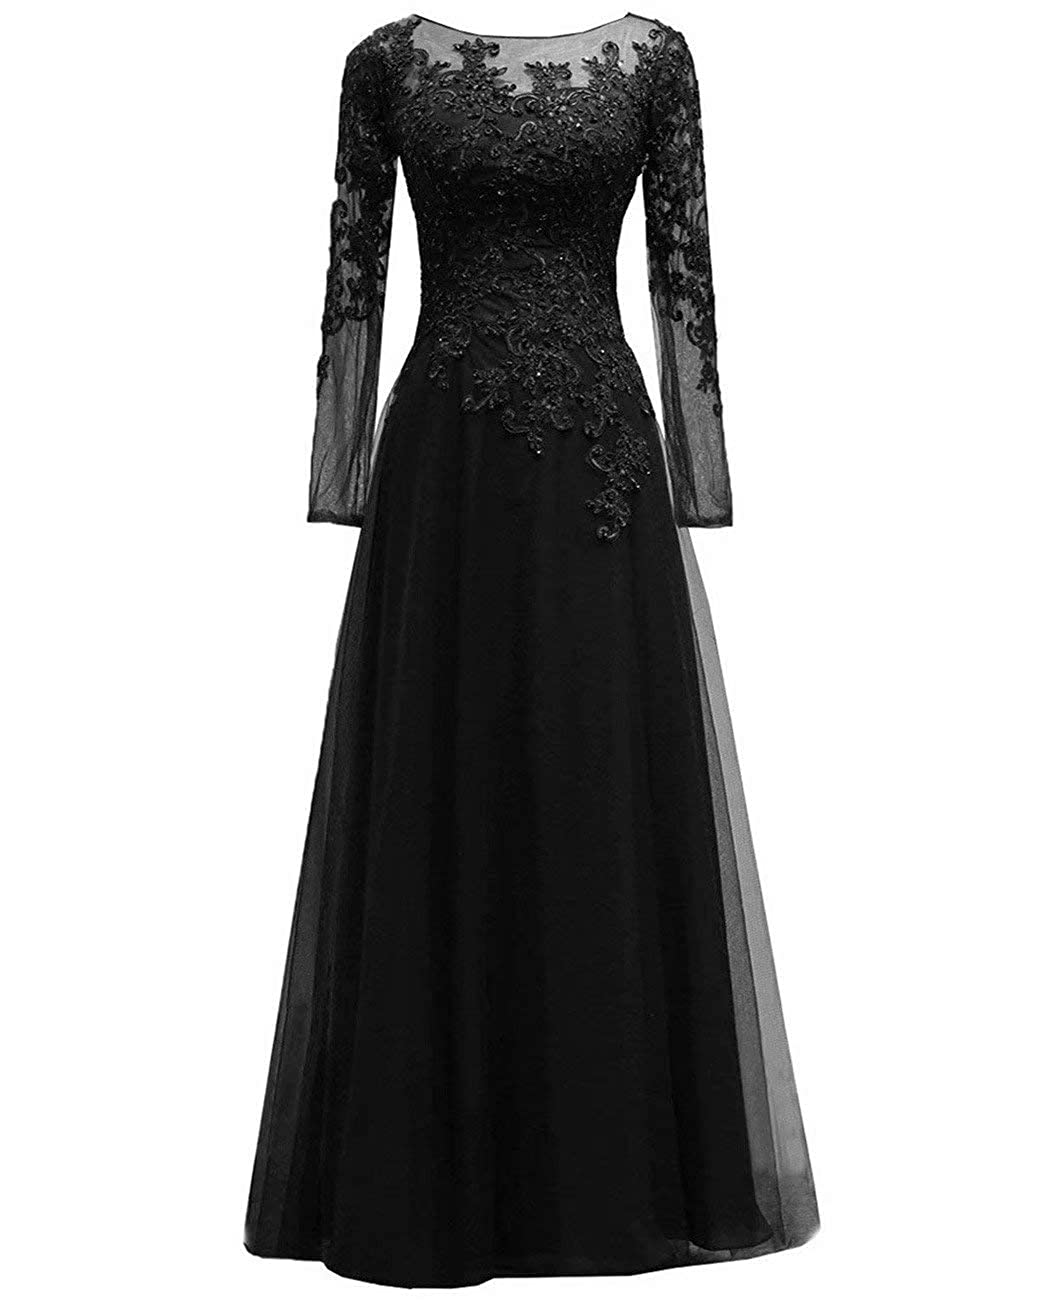 2928a33e8b Women s Beaded Appliques Tulle Mother of The Bride Dress Long Sleeves  Formal Evening Gown at Amazon Women s Clothing store